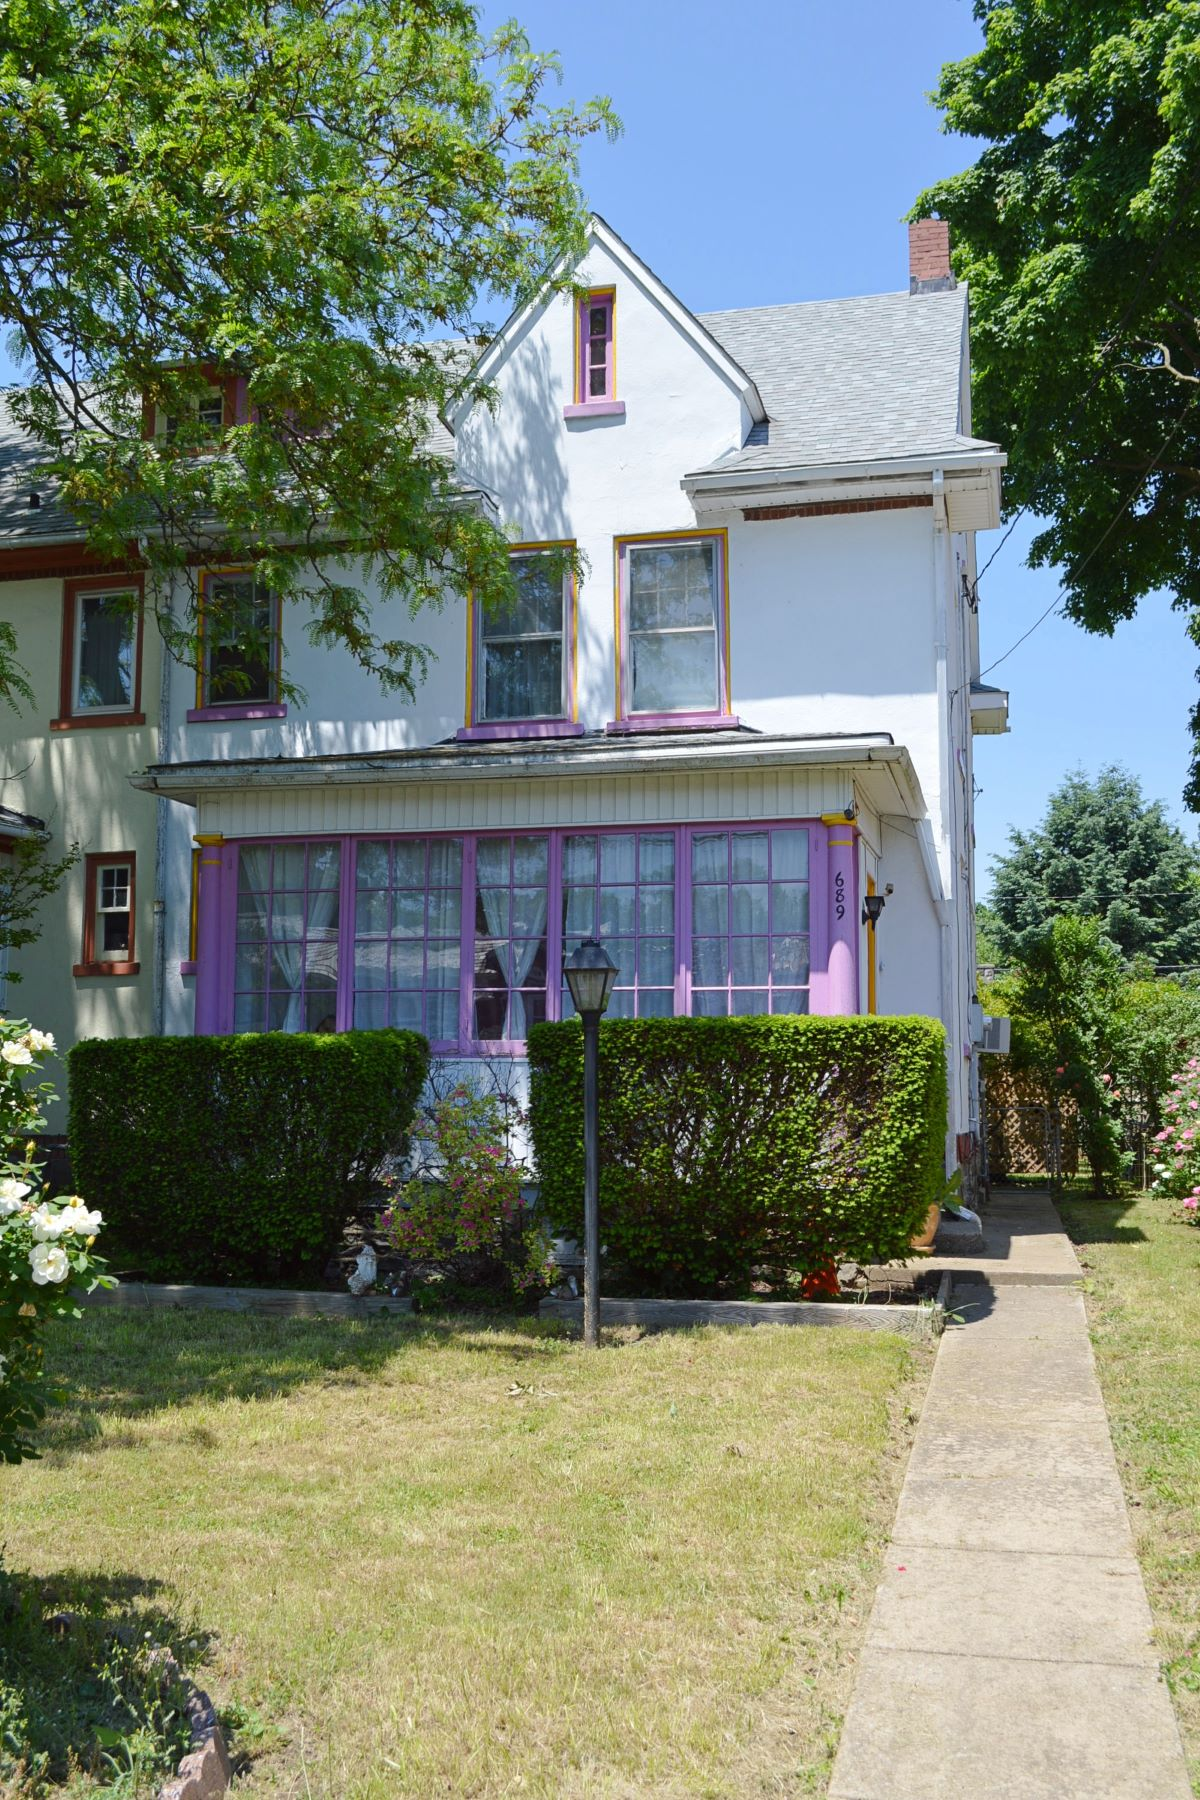 Additional photo for property listing at 689 New Holland Ave 689 New Holland Ave Lancaster, Pennsylvania 17602 United States